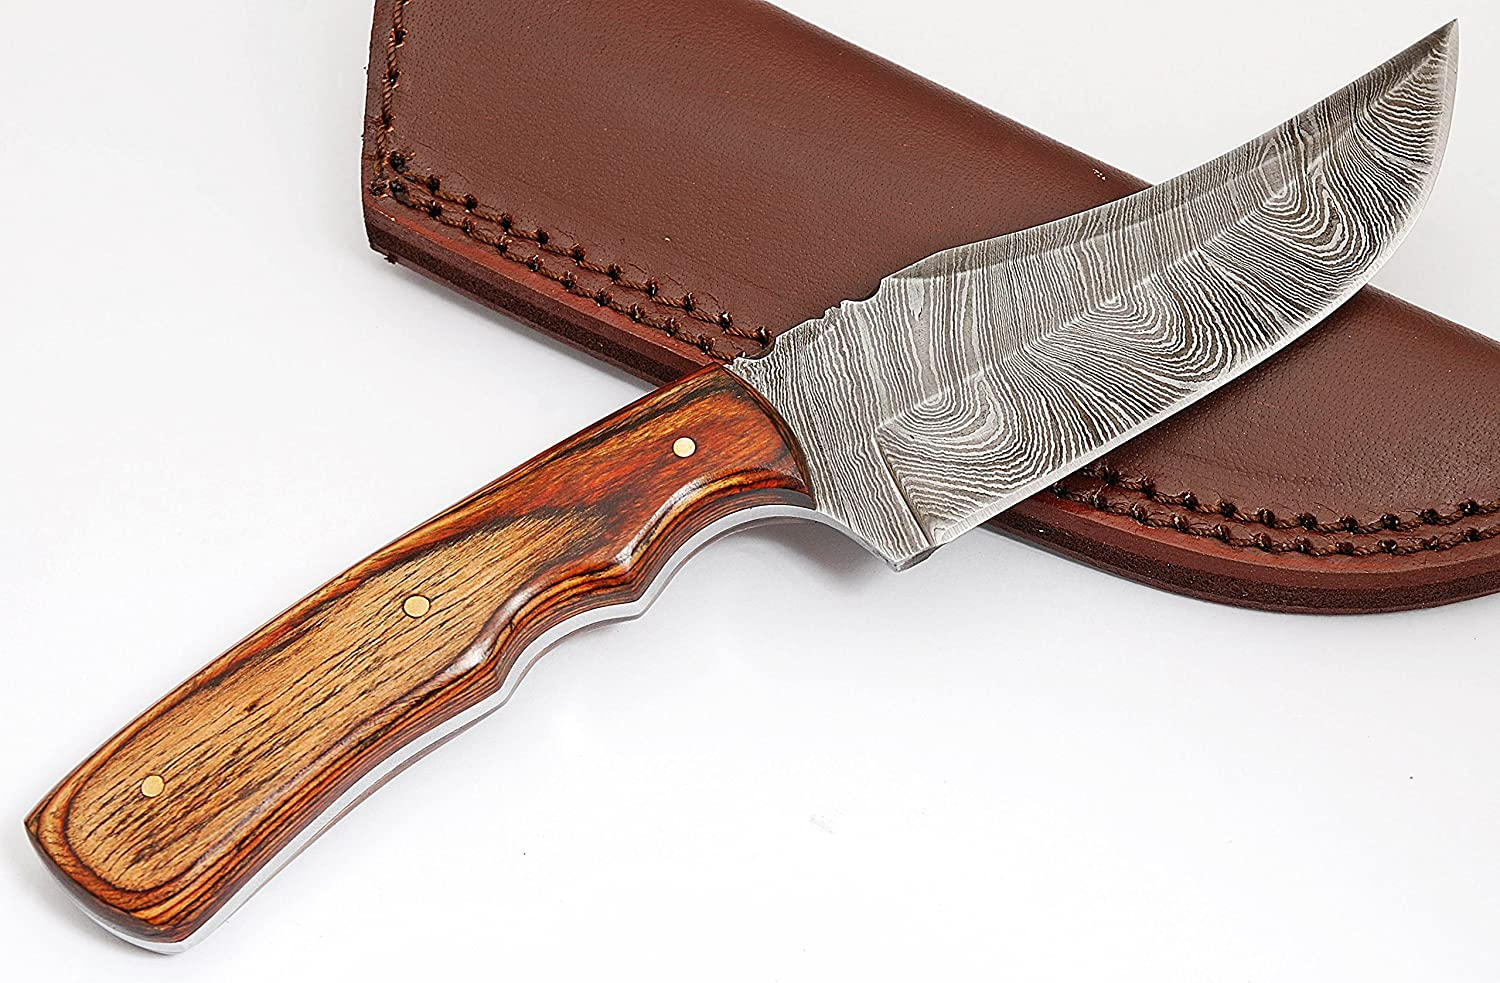 5. Anna Home Collection AN-9013 Skinning Knife